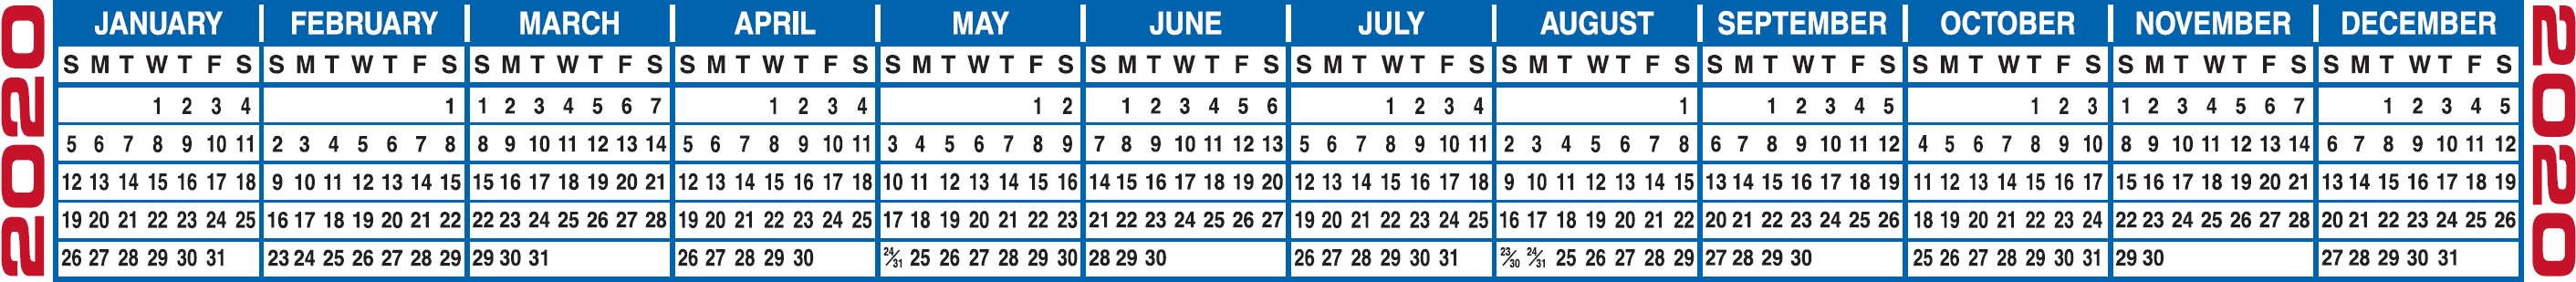 Free Printable 2020 Calendars & 2020 Calendar Strips